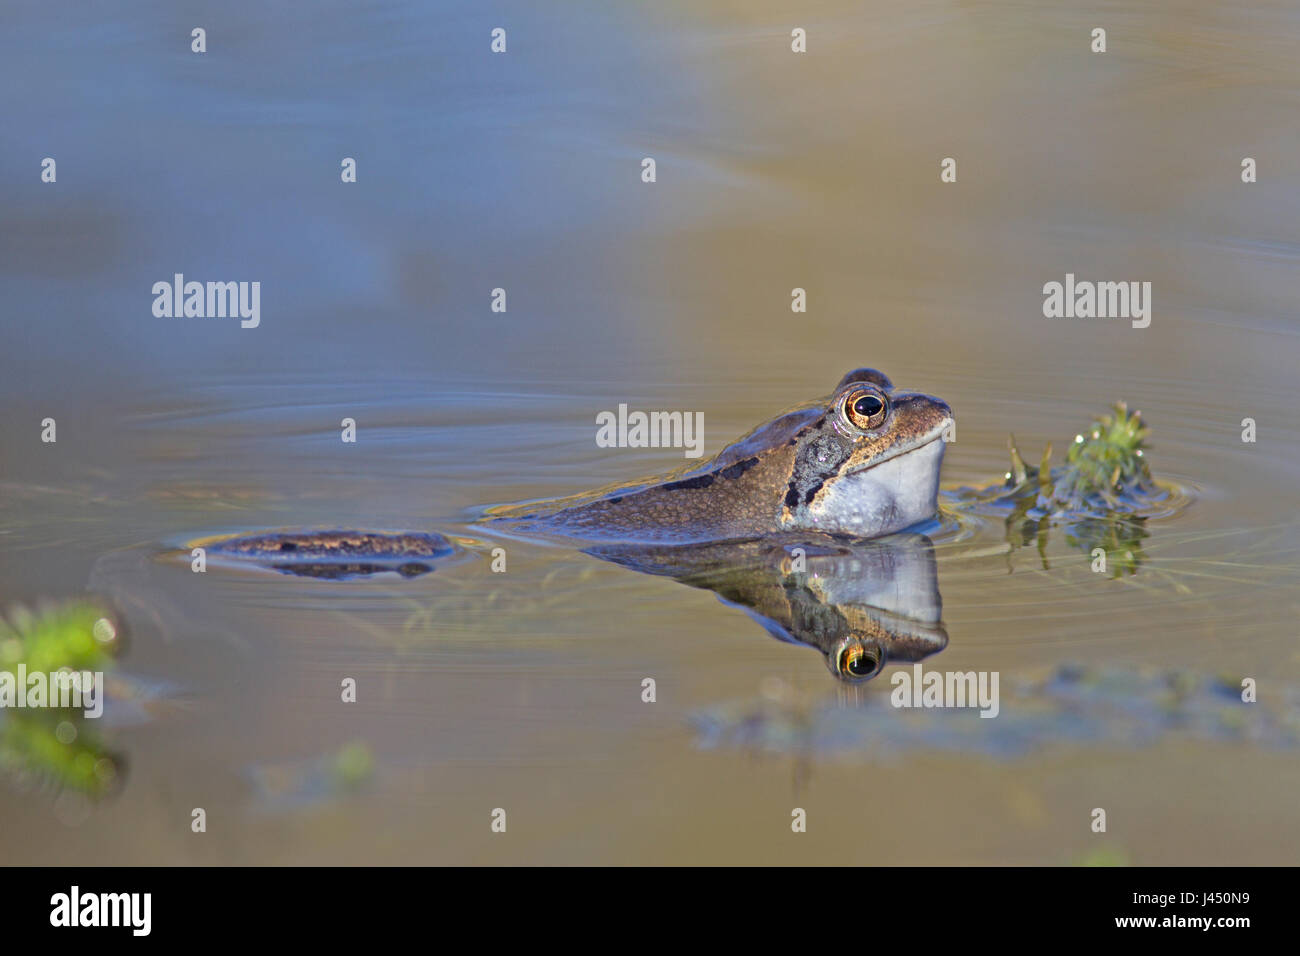 Common frog male calling in the water - Stock Image